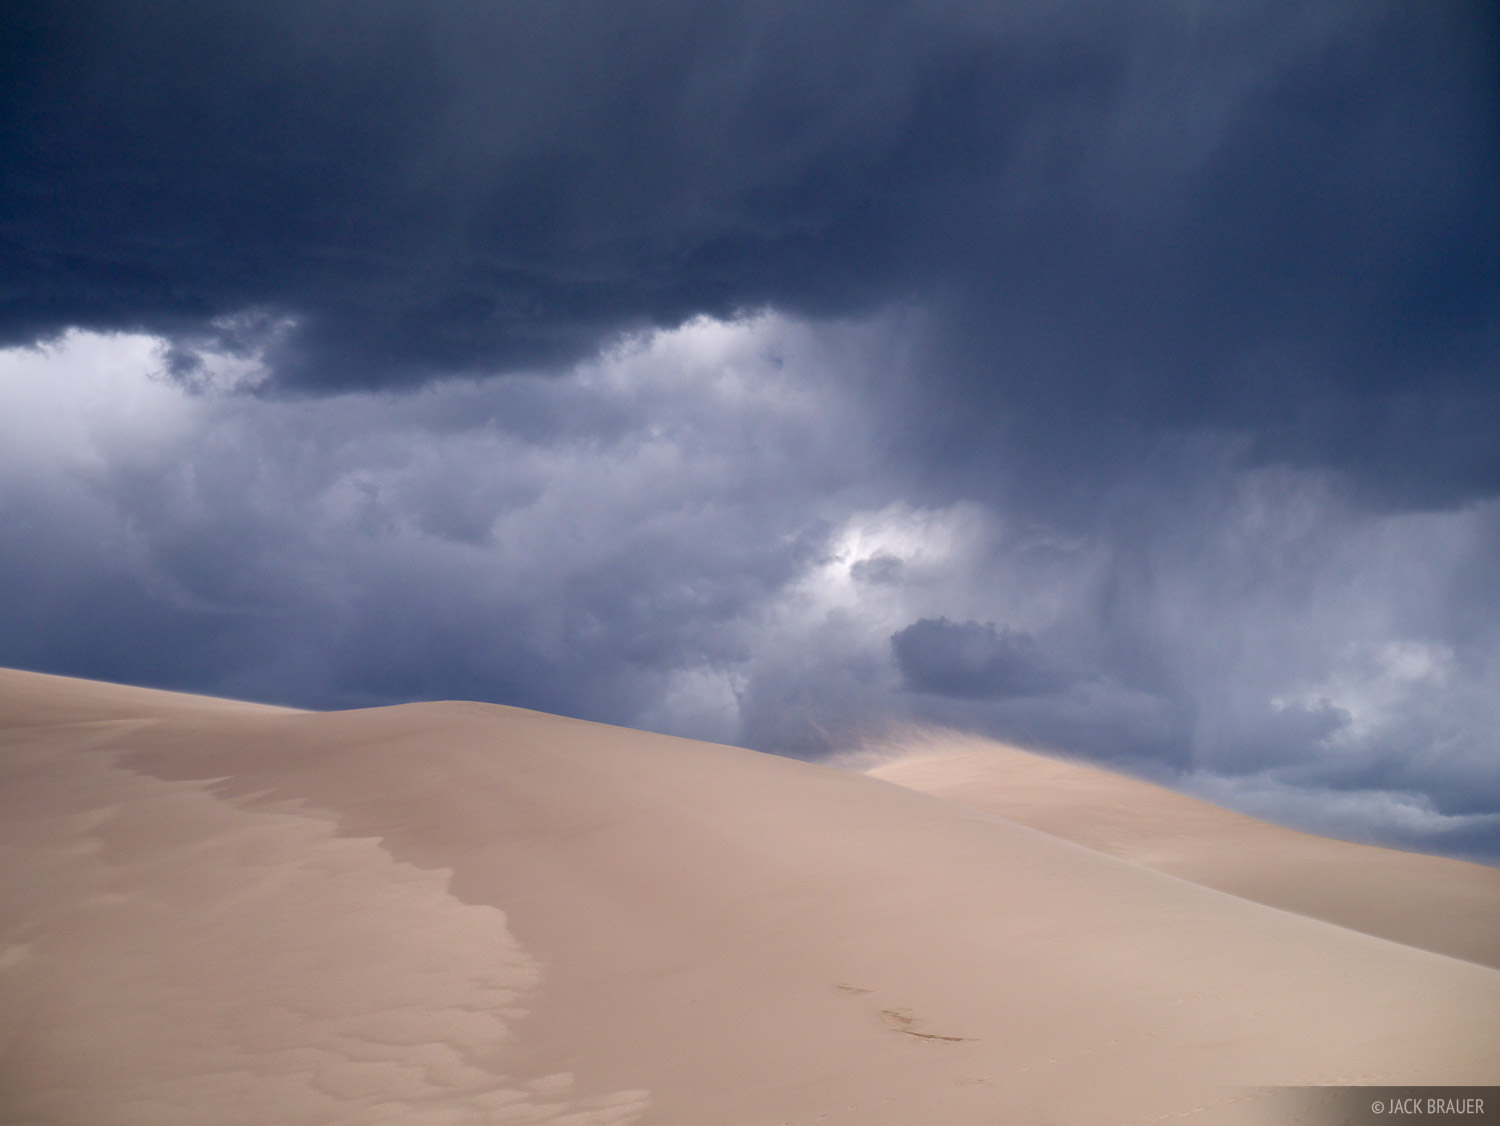 Ominous clouds brew over the Great Sand Dunes, Colorado - June.